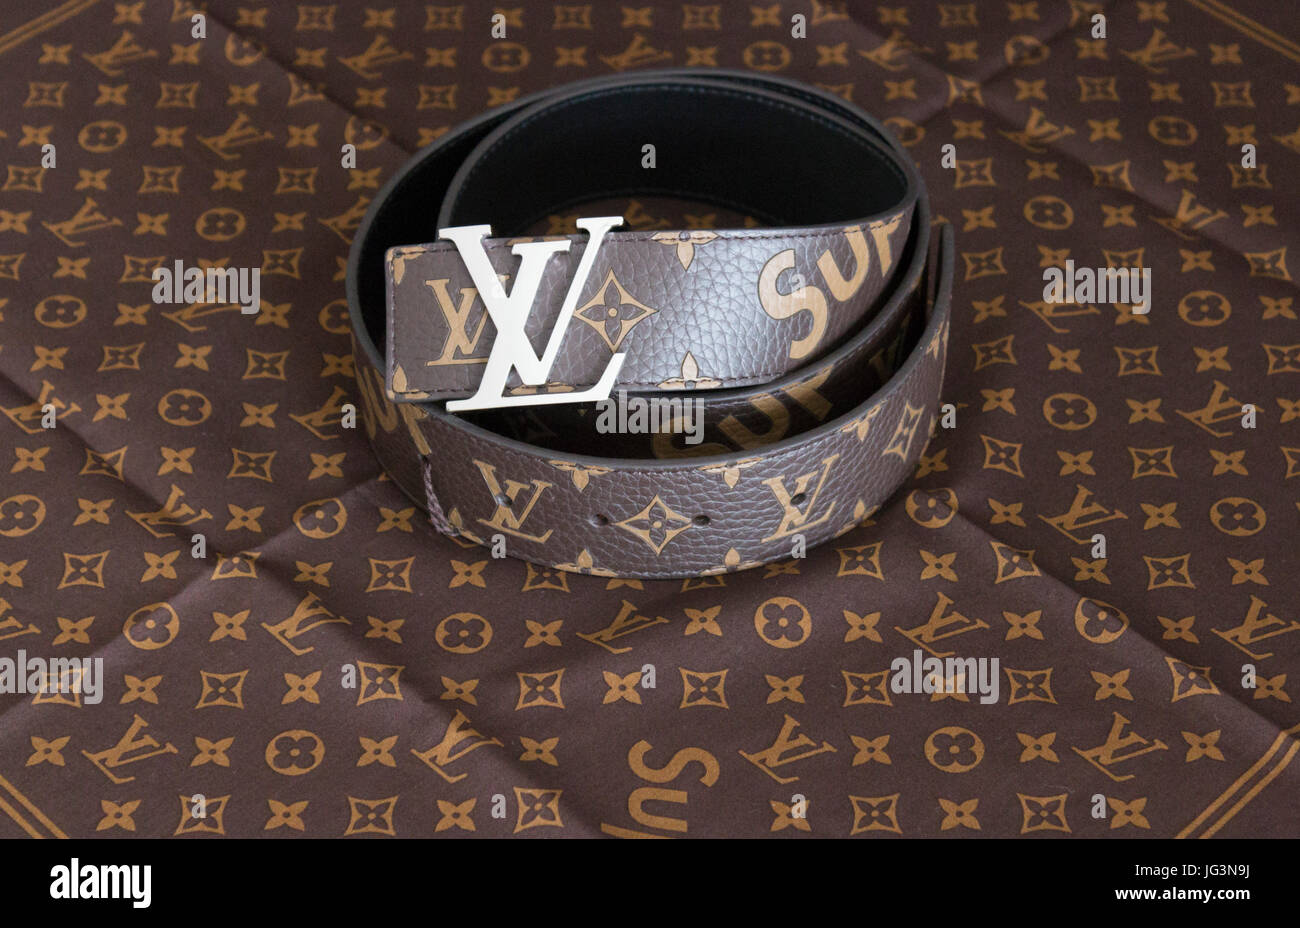 Supreme collaboration with Louis Vuitton belt and bandana - Stock Image 15659192a9f4